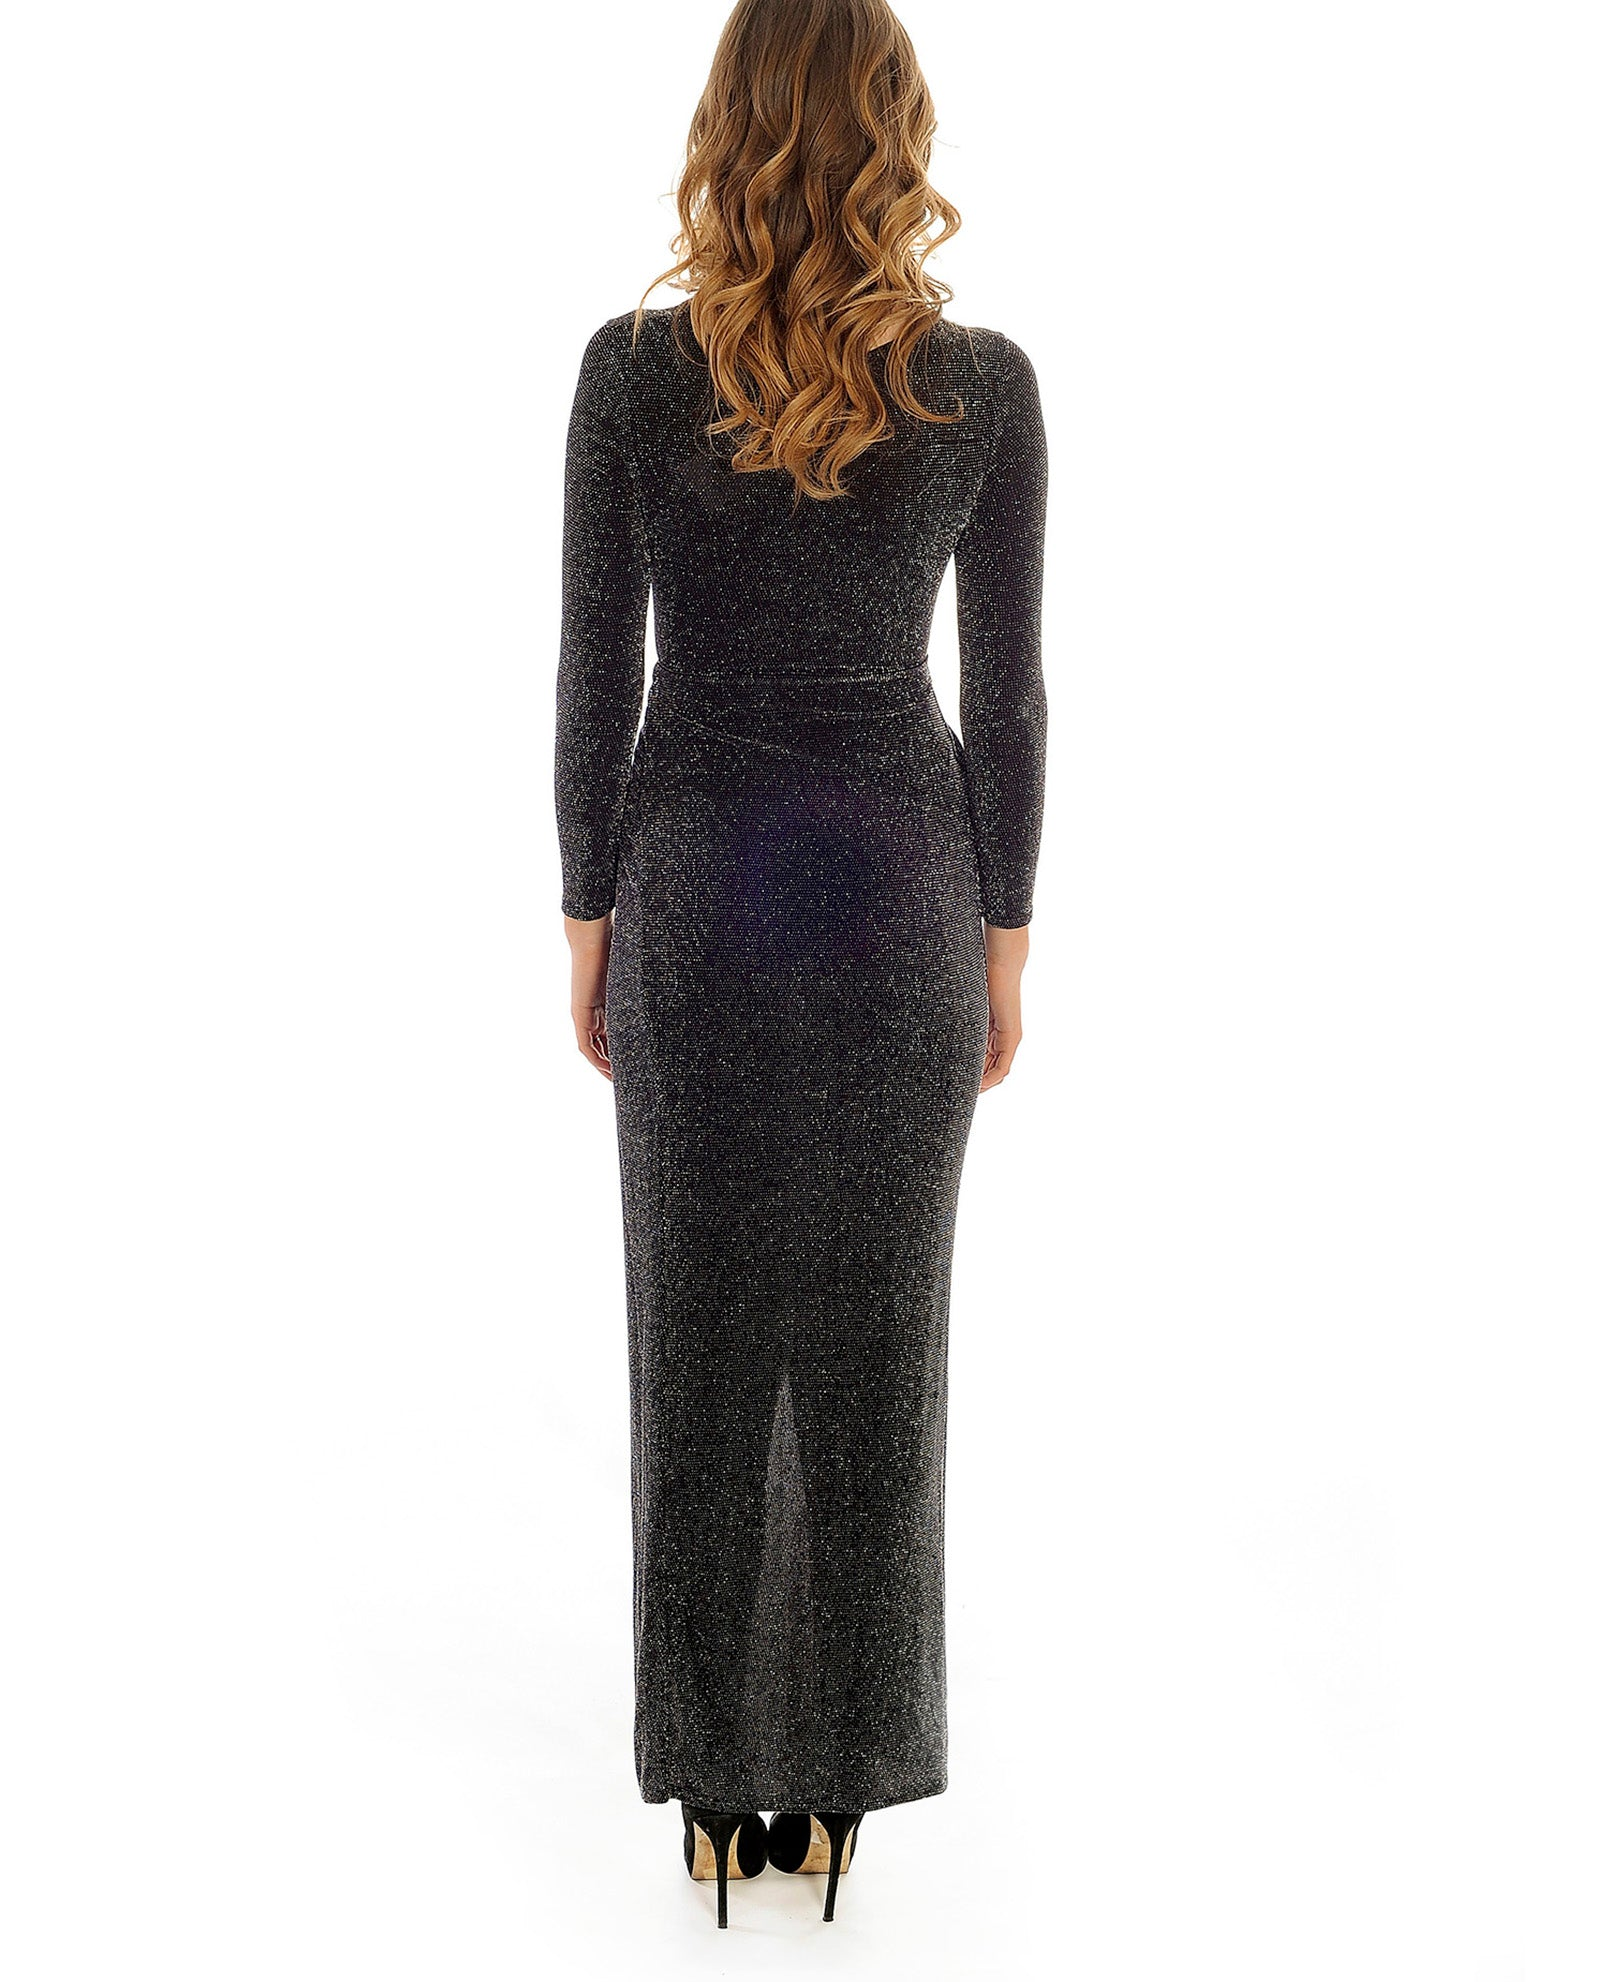 Rent dress | Black sparkle Binky In the style | Hirestreetuk.com